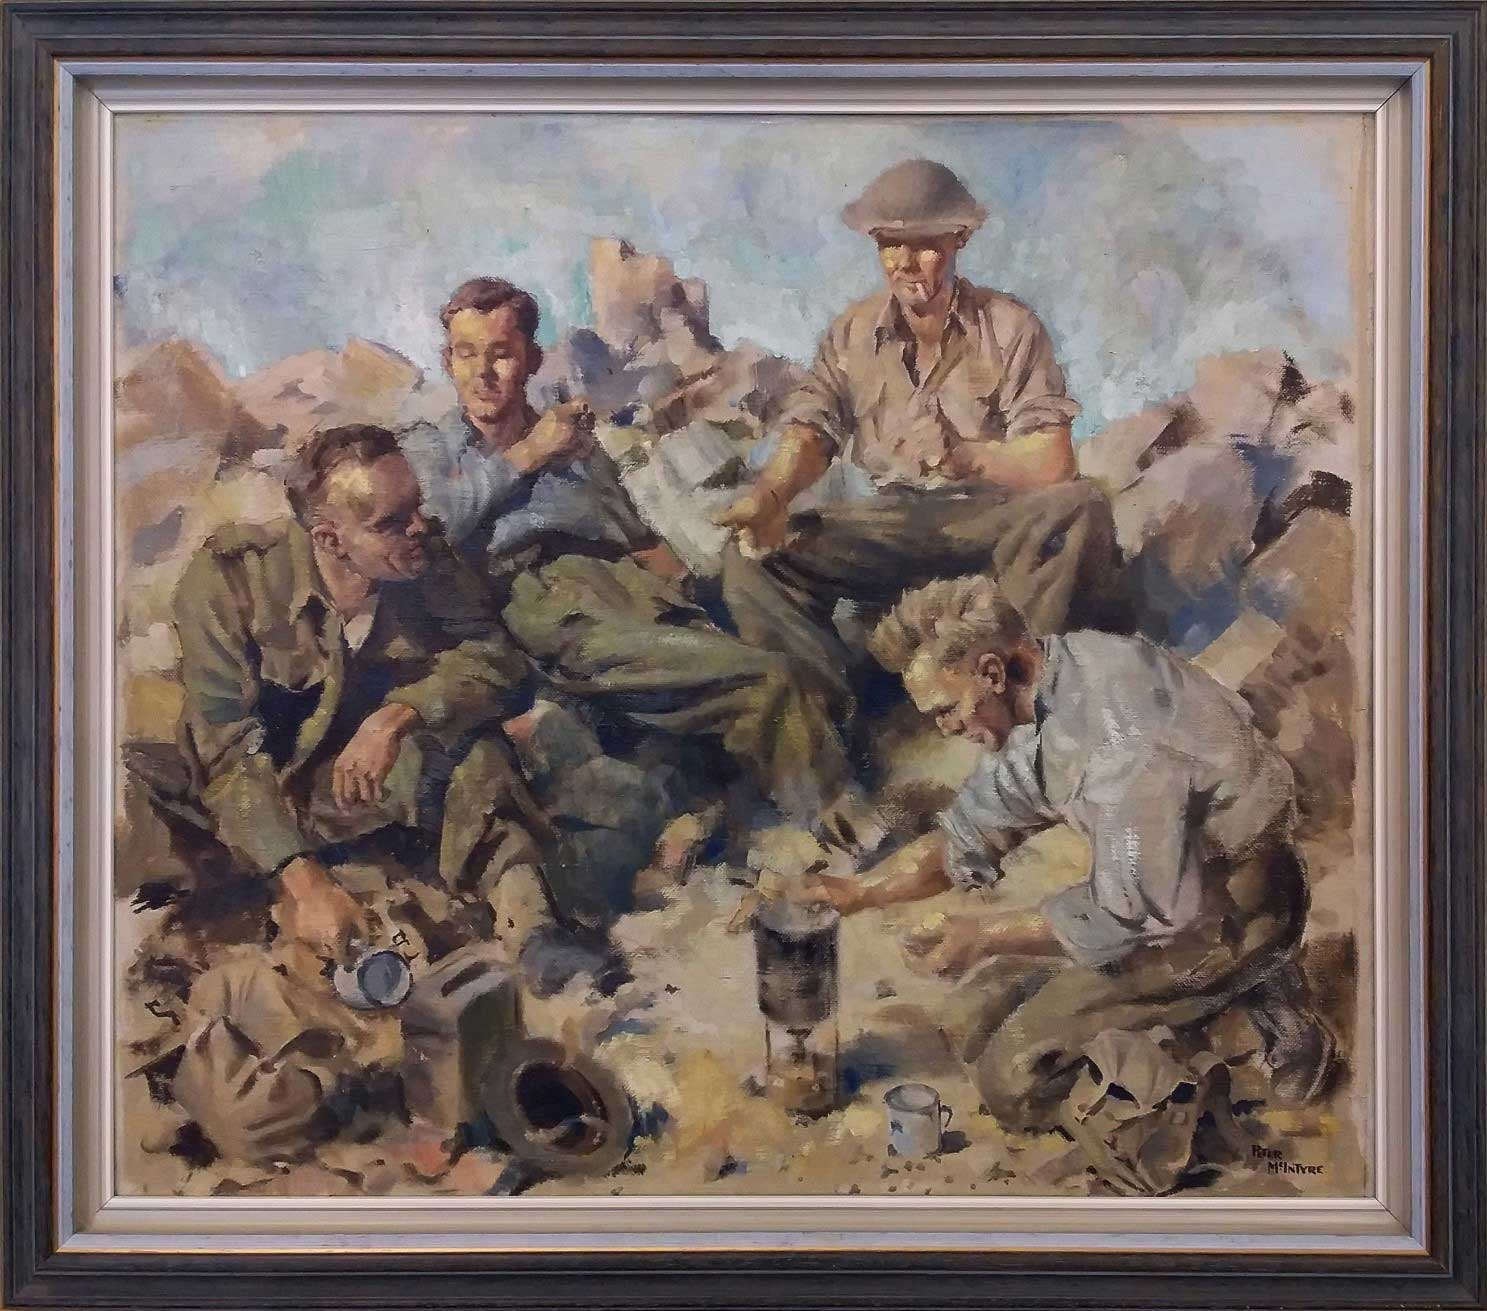 A striking example from The National Collection of War Art. 'Kiwis' by Peter McIntyre 1941